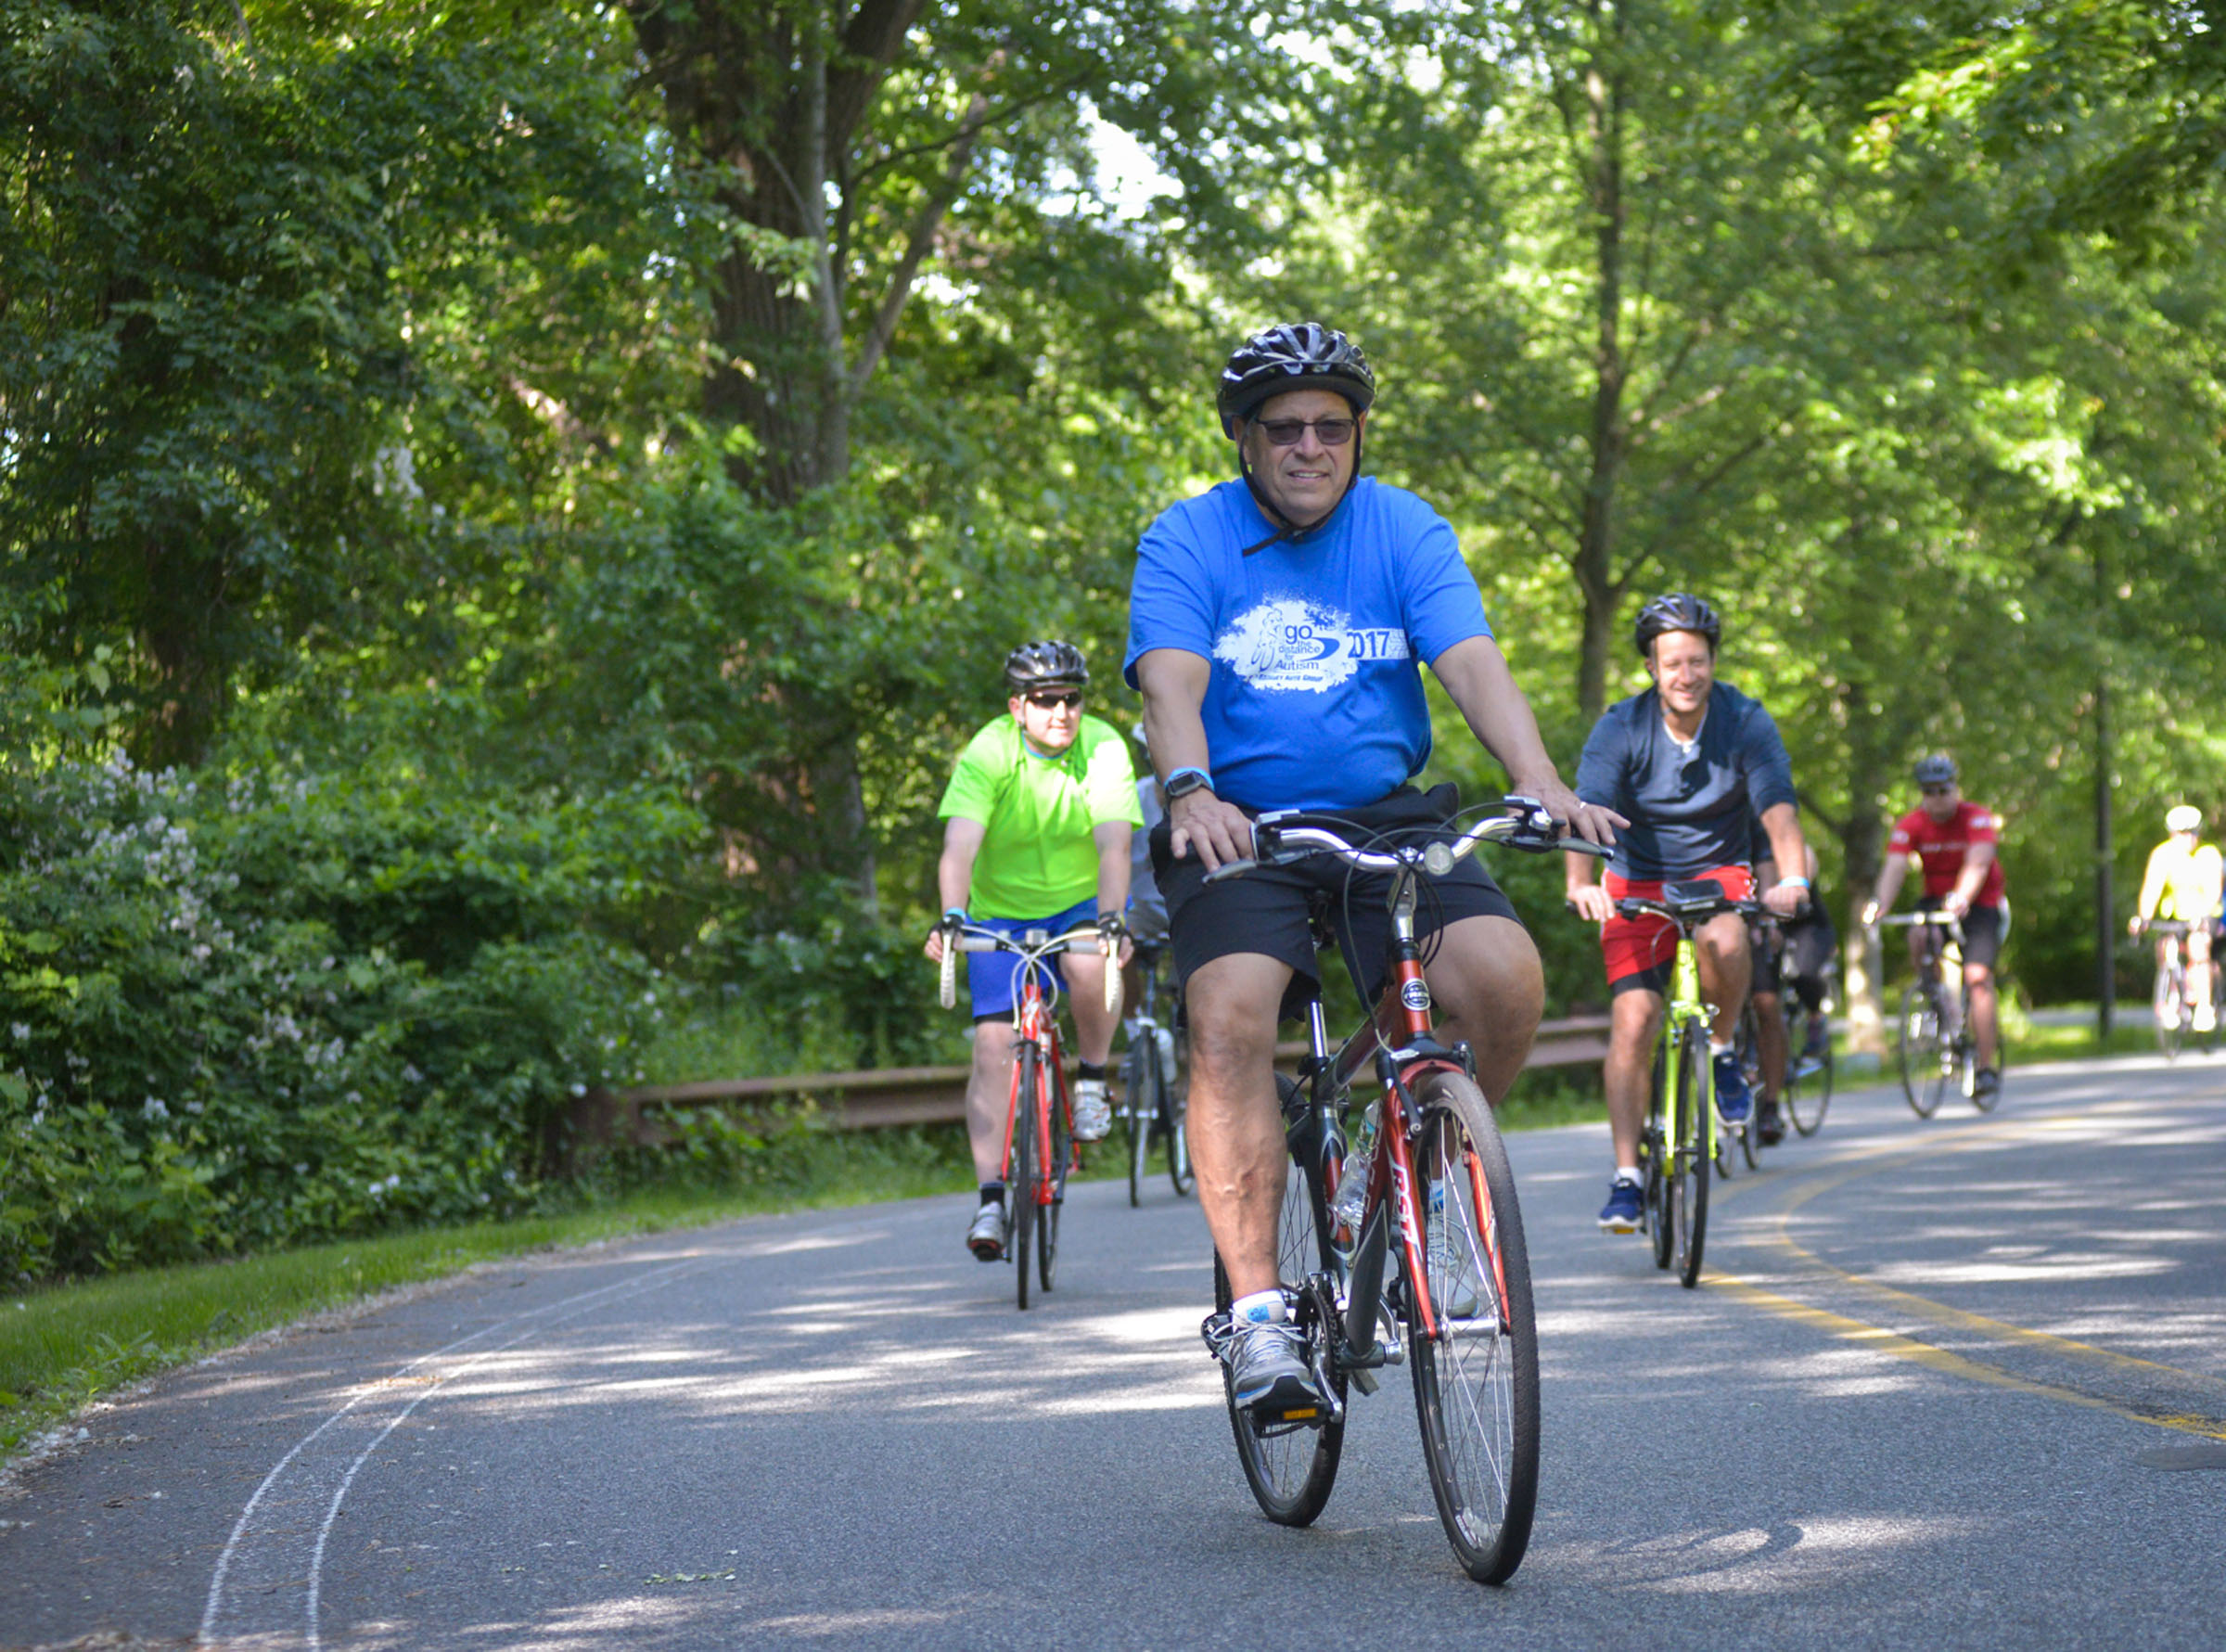 2017-06-04 GTD4A Charity Bike Ride - BCC - Paramus NJ-1911.jpg